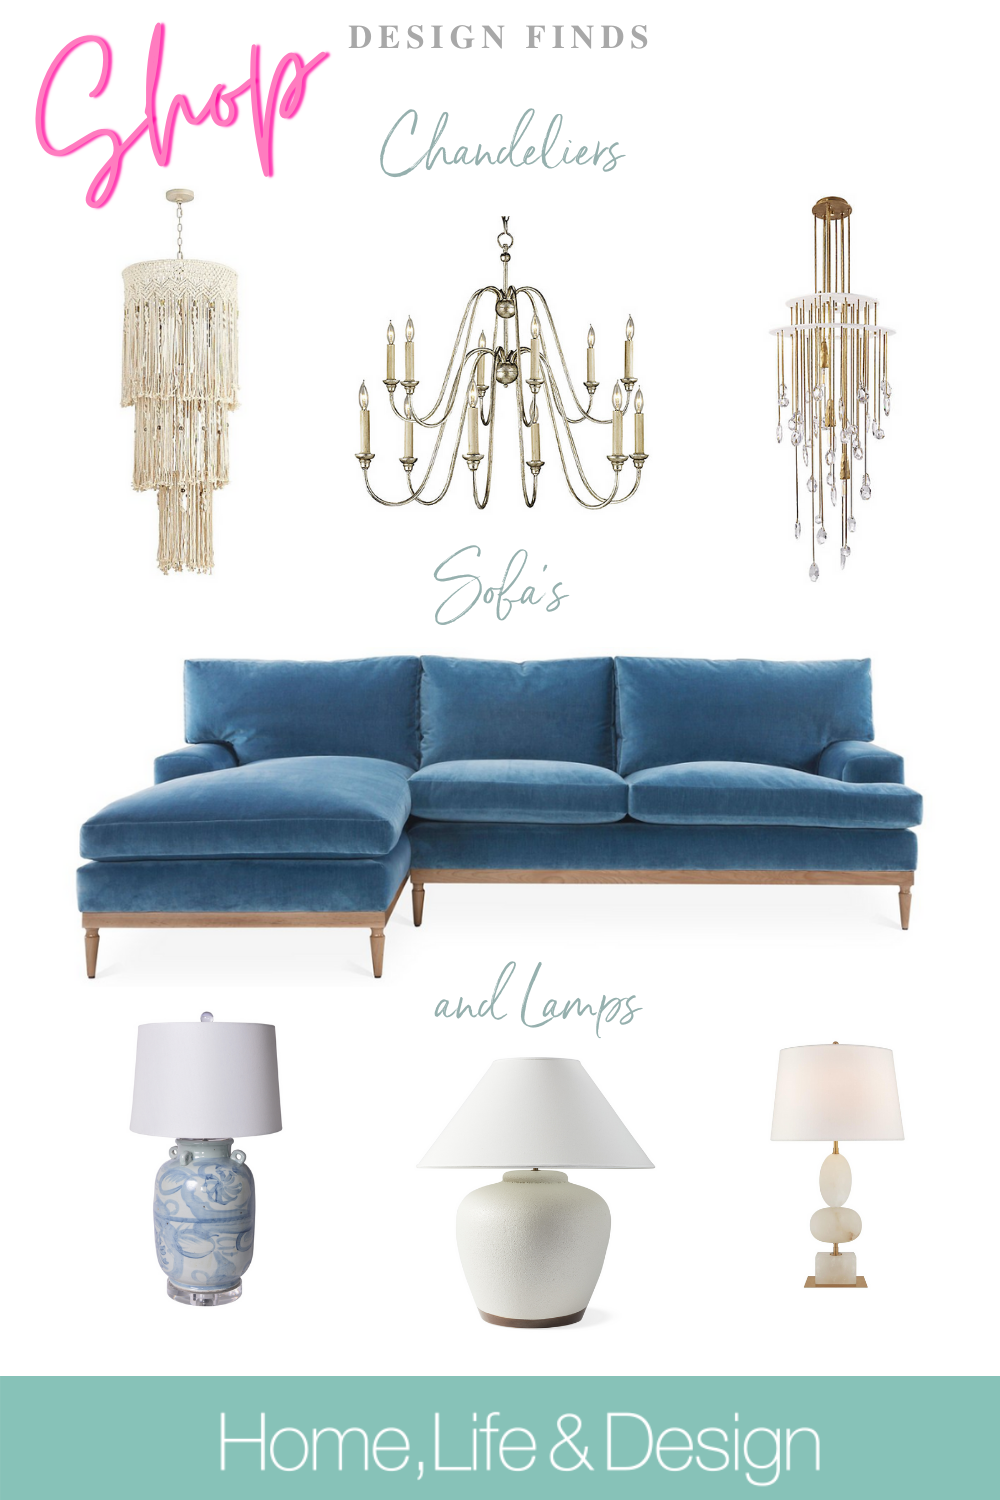 Shop Sofas Chandeliers and Lamps jill Shevlin Design